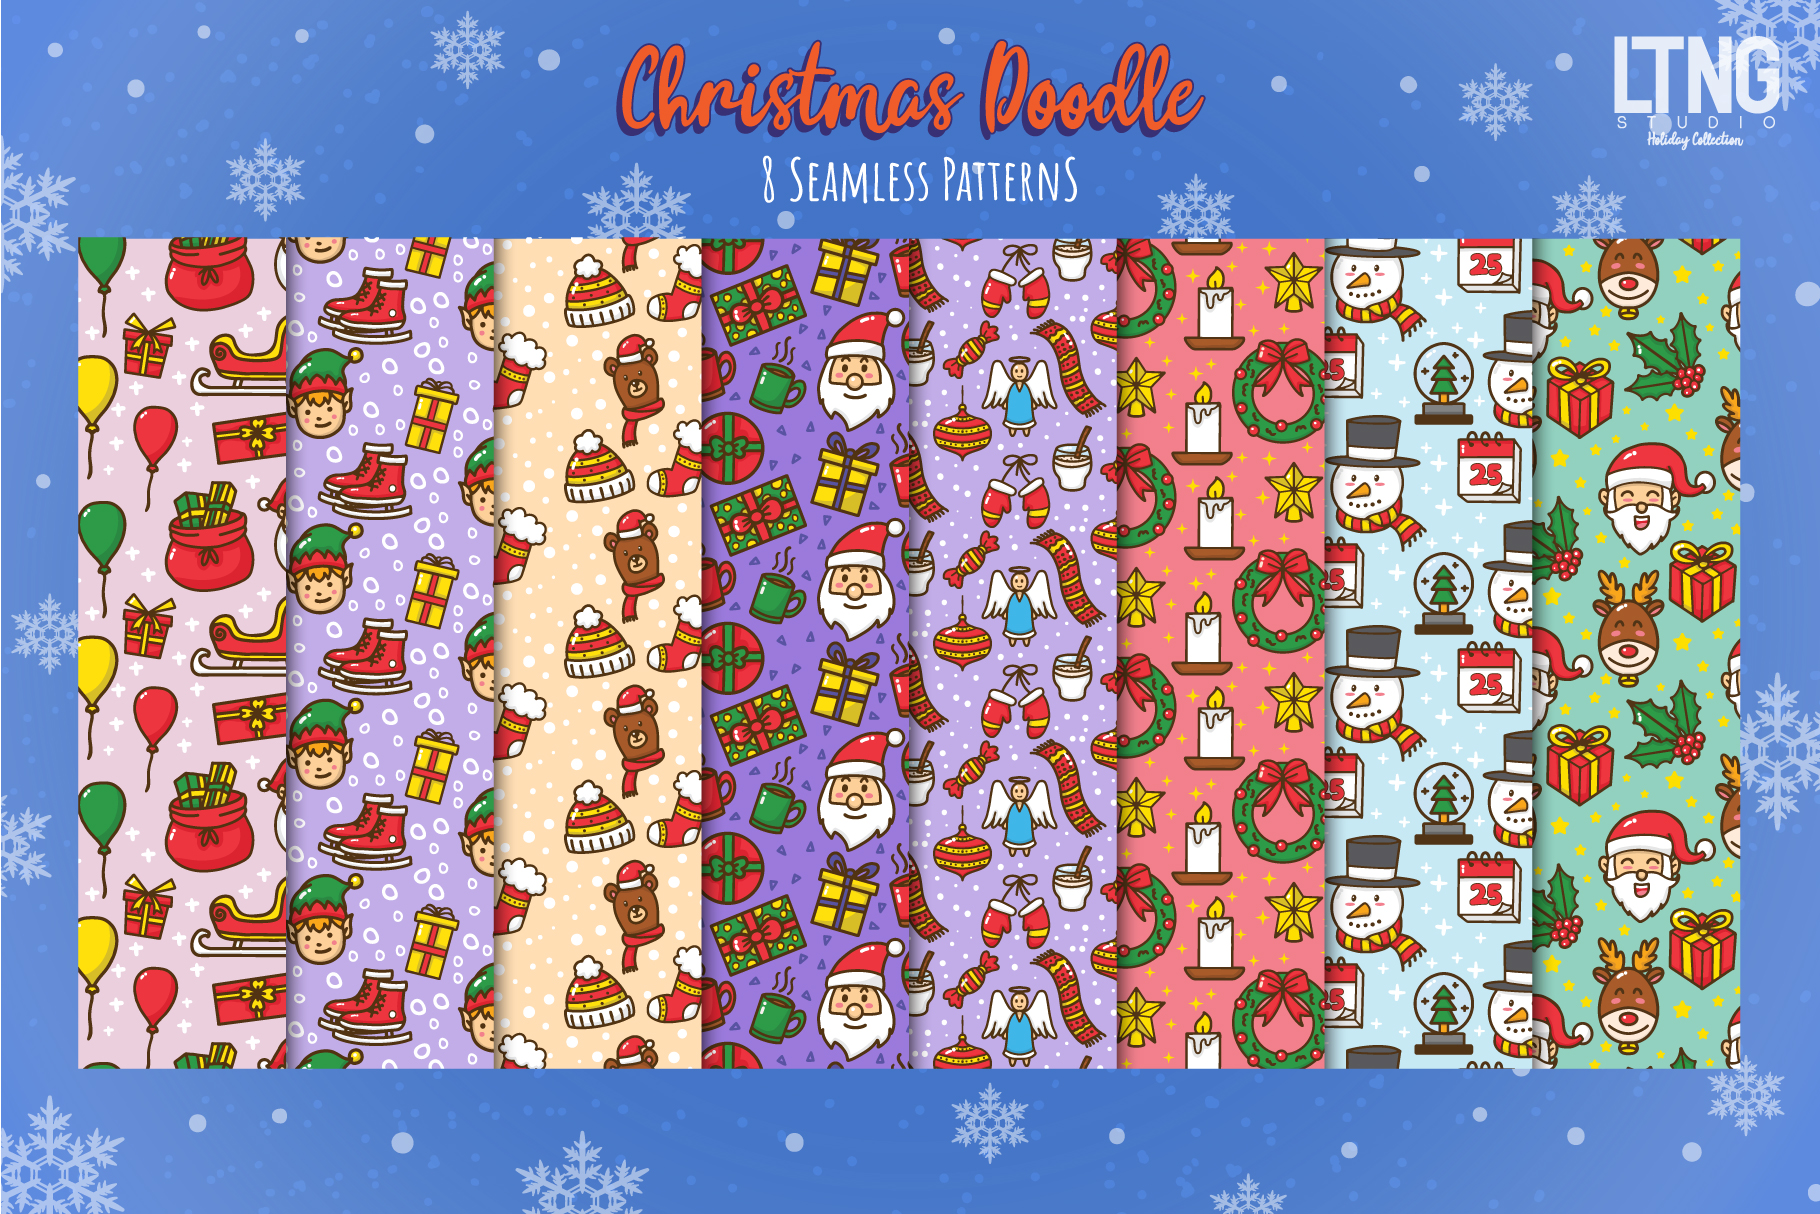 Christmas Doodle Graphic Element 2 example image 3